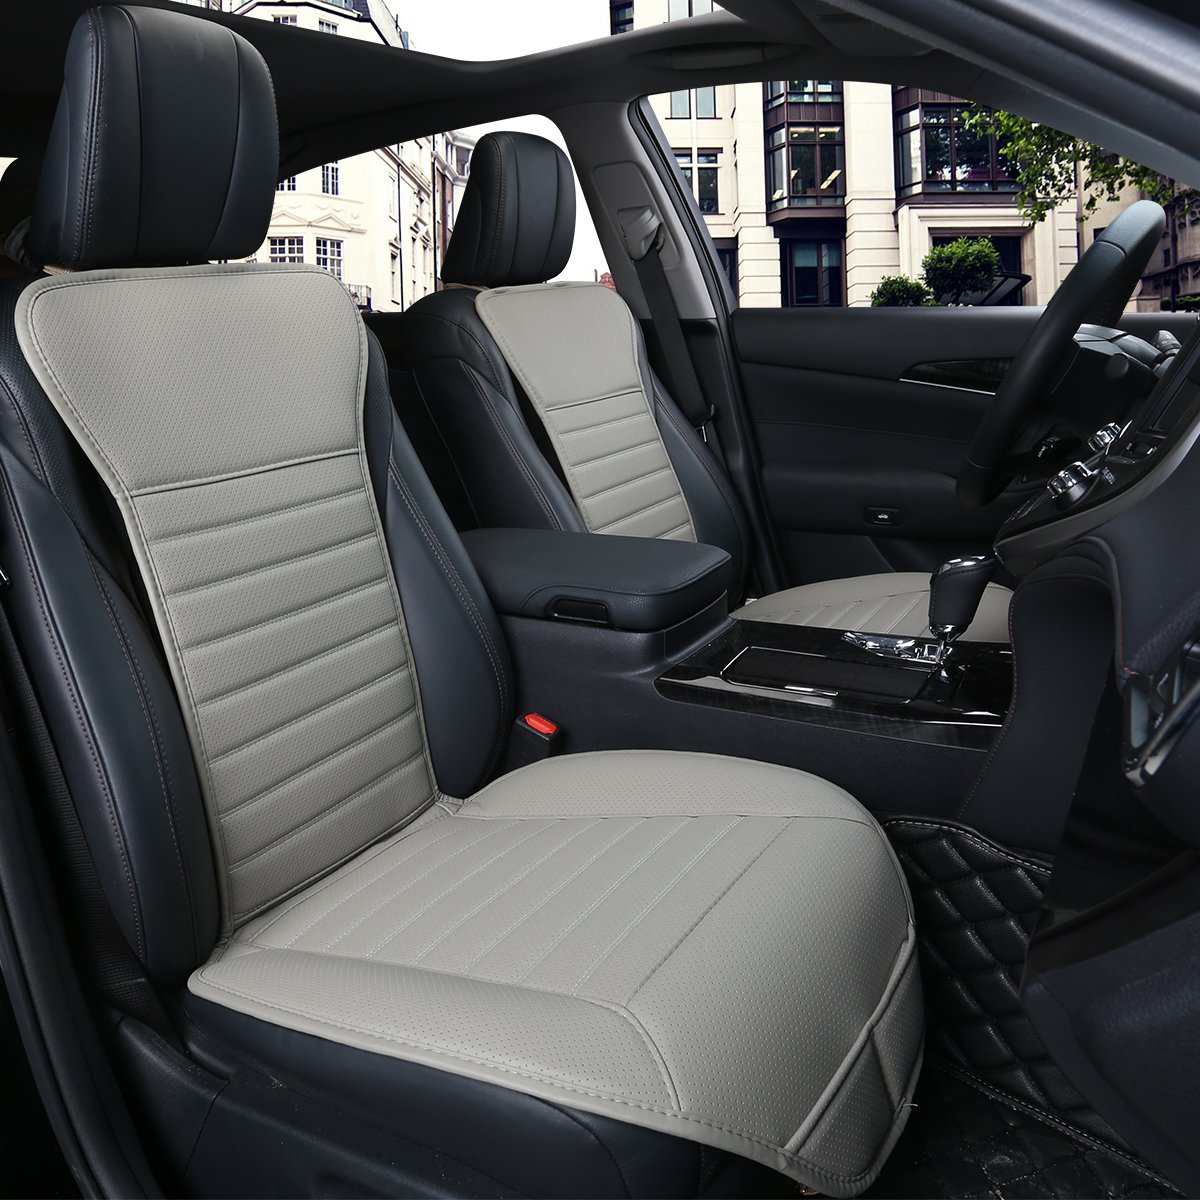 2PCS Driver and Passenger Seat Cover PU Leather Seat Covers Universal Car Seat Cover Front Seat Protector Fit Most Sedans /&Truck /&SUV EDEALYN 2 PCS Gray - no Charcoal